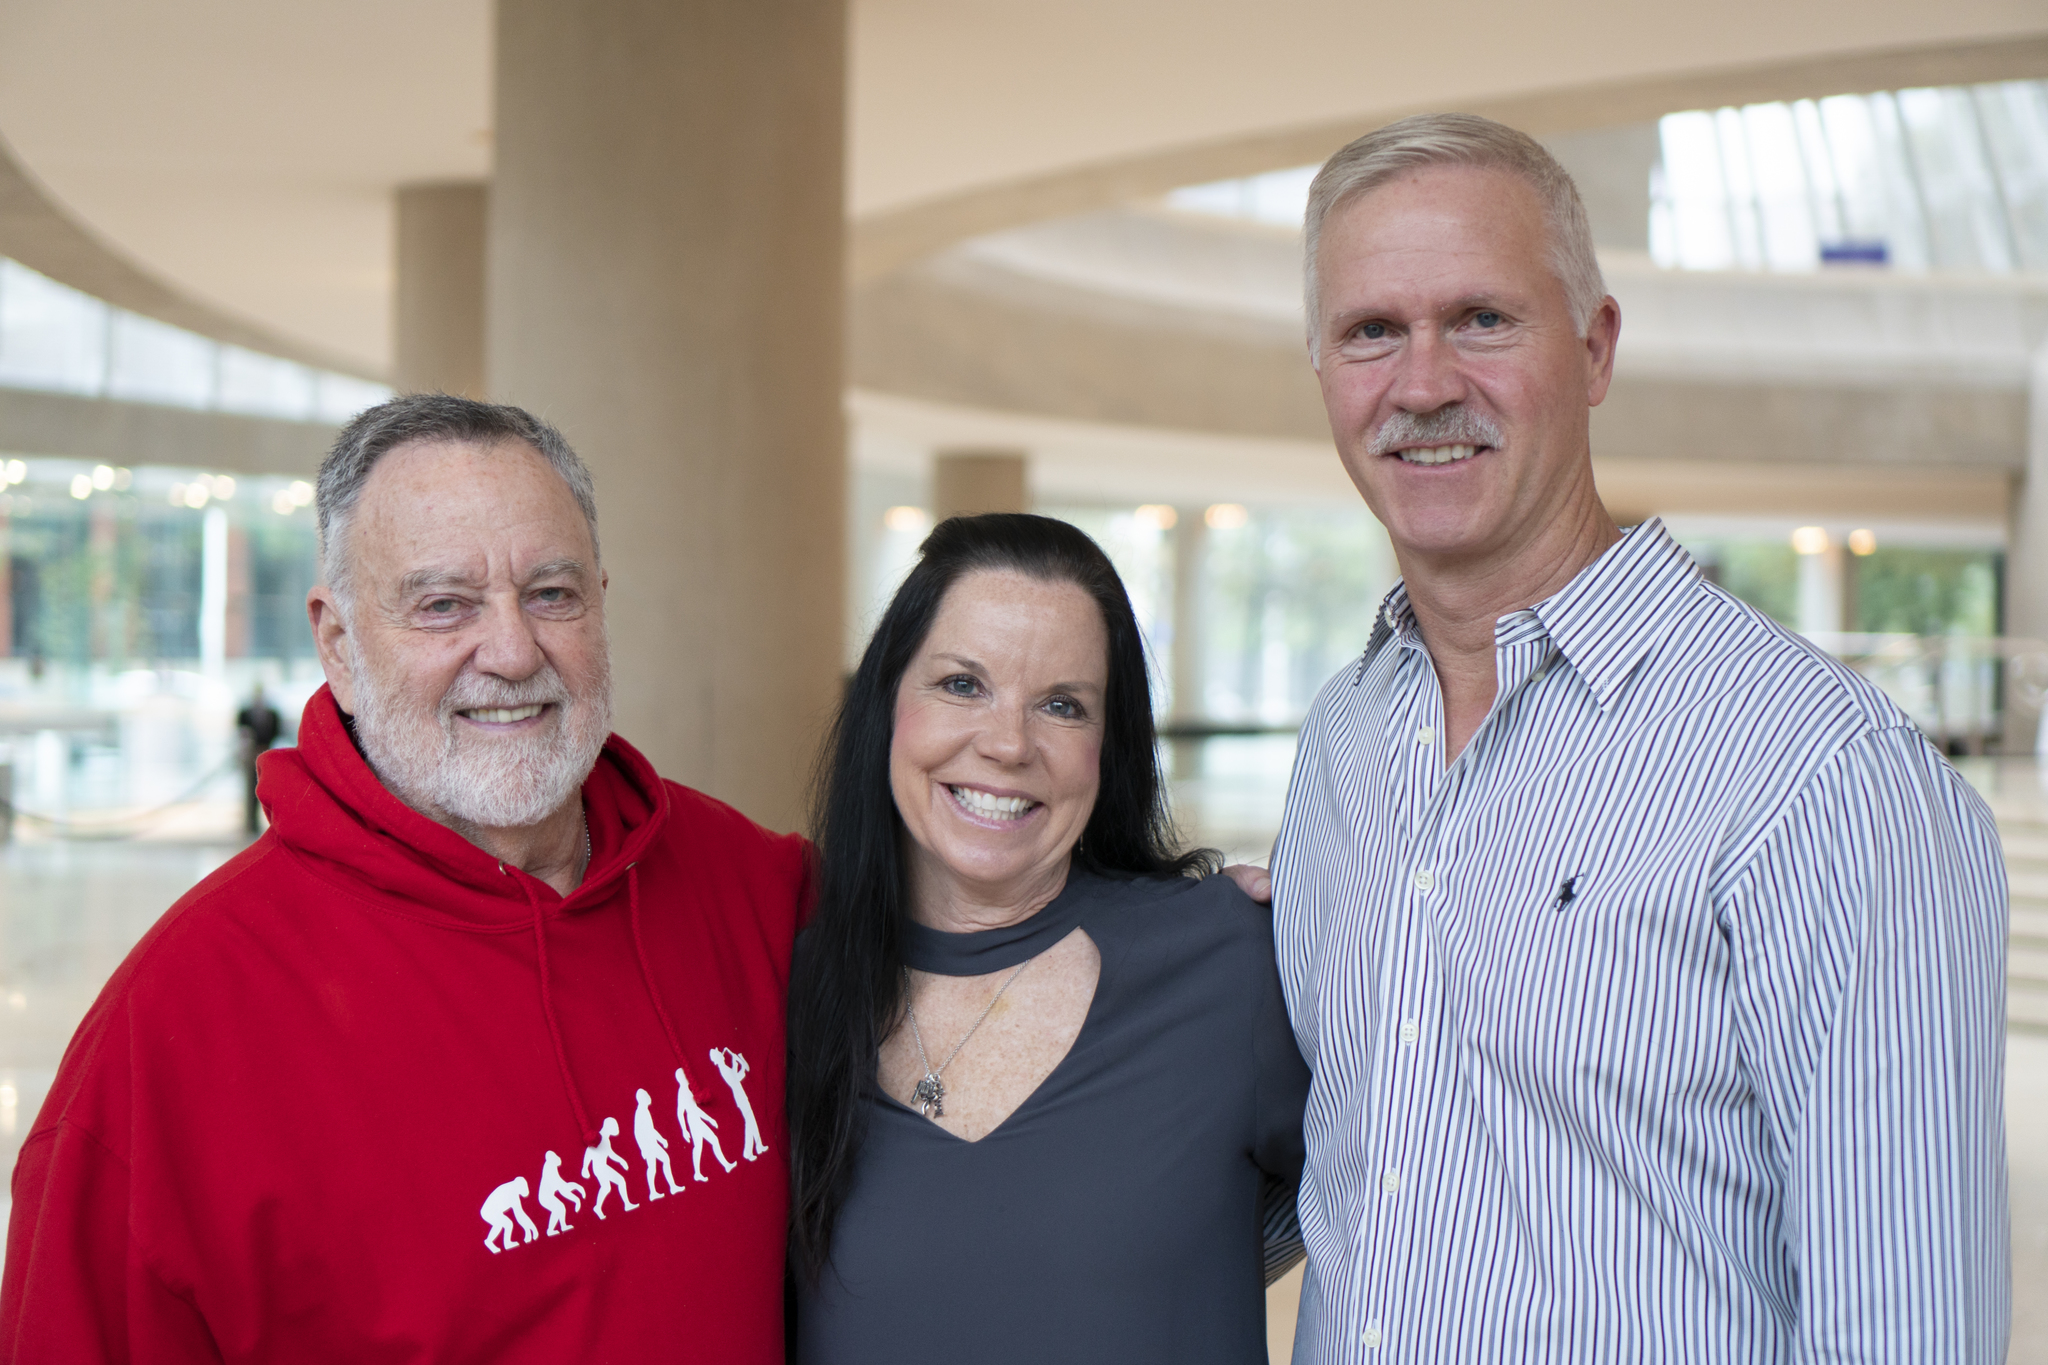 Morton Meyerson with Mimi and Kevin Cox, Freddie Garrison McNeel's daughter and son-in-law